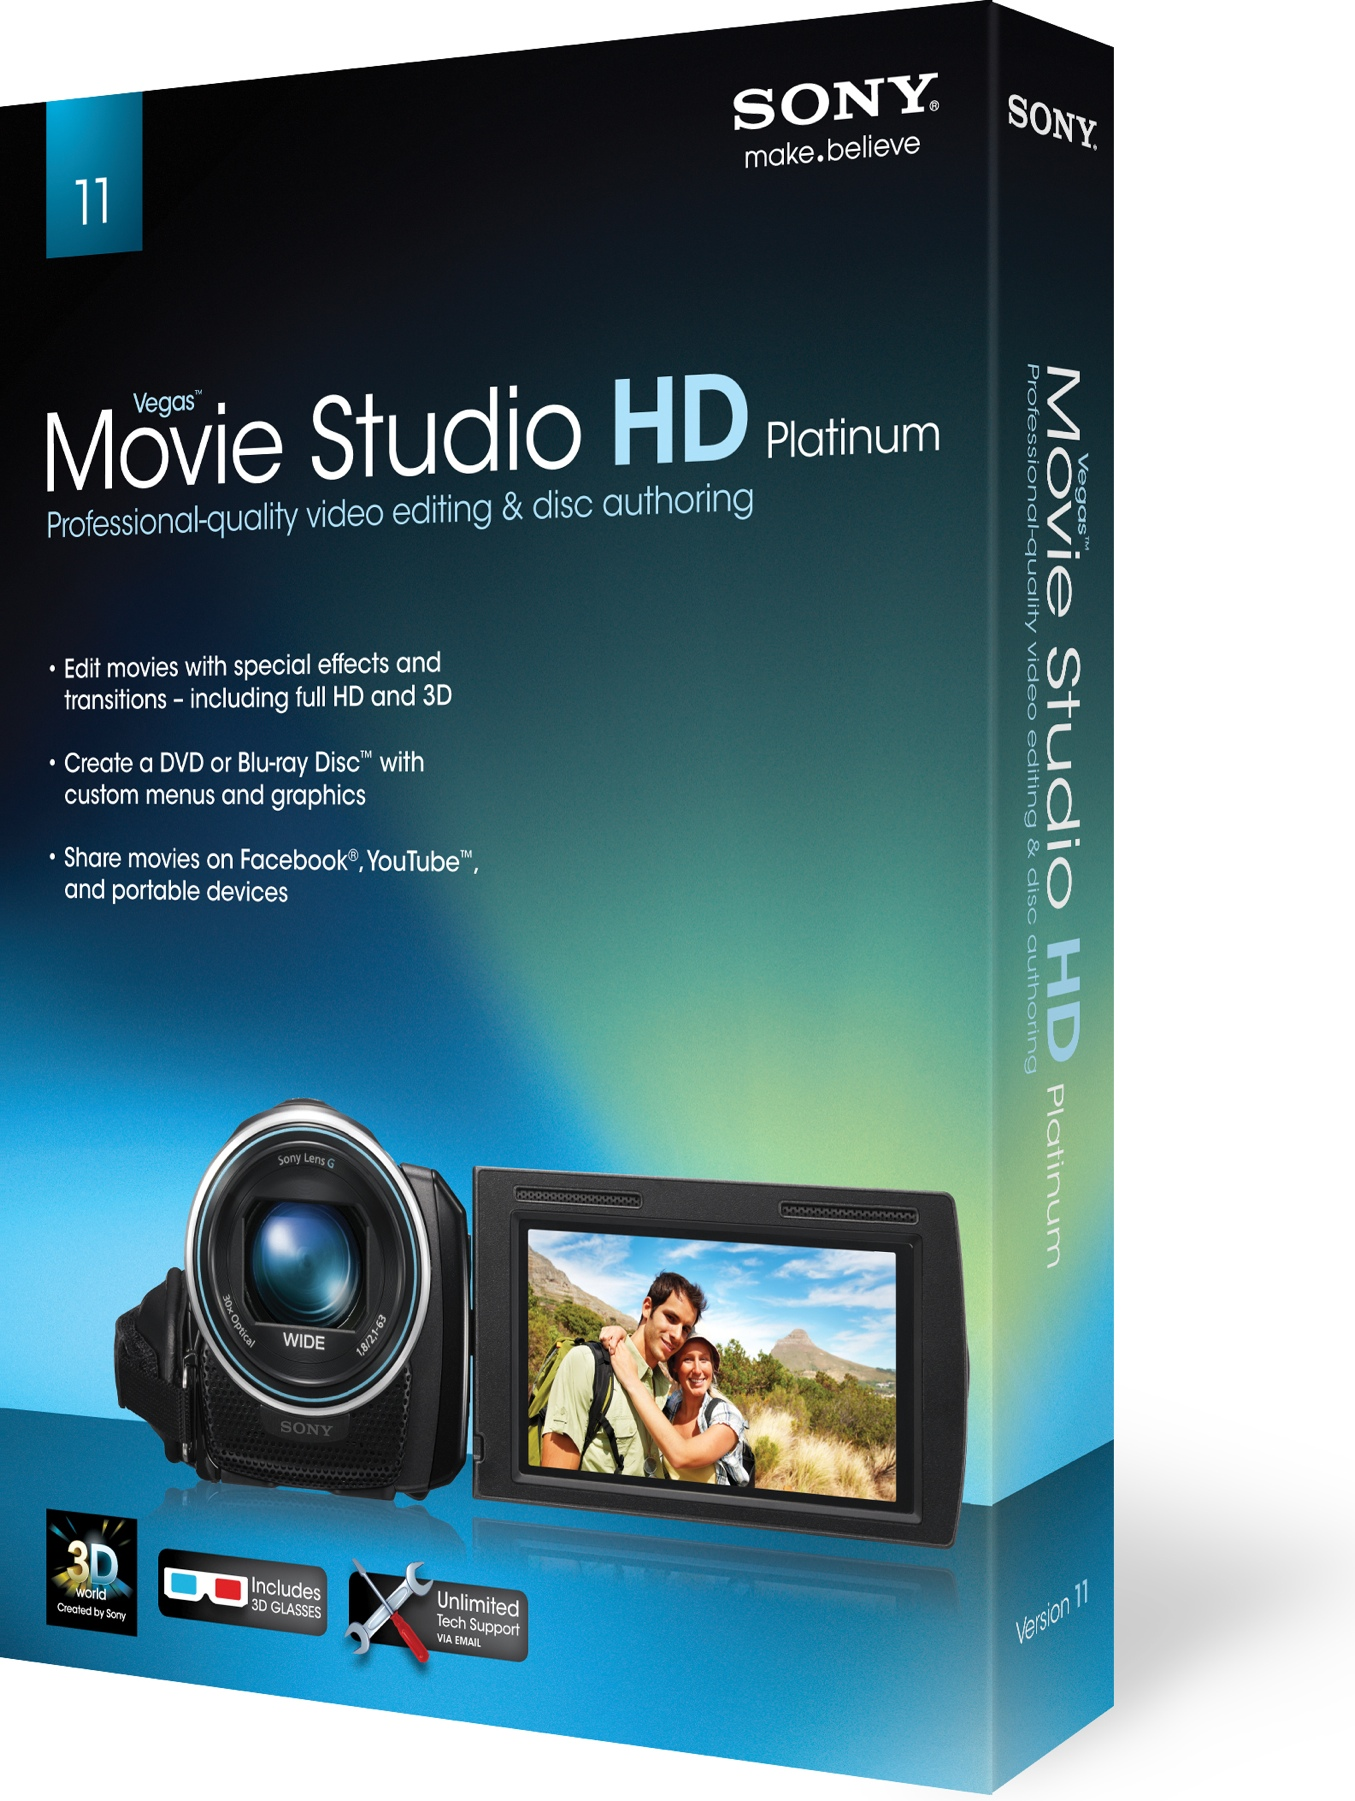 Sony vegas movie studio platinum hd 11